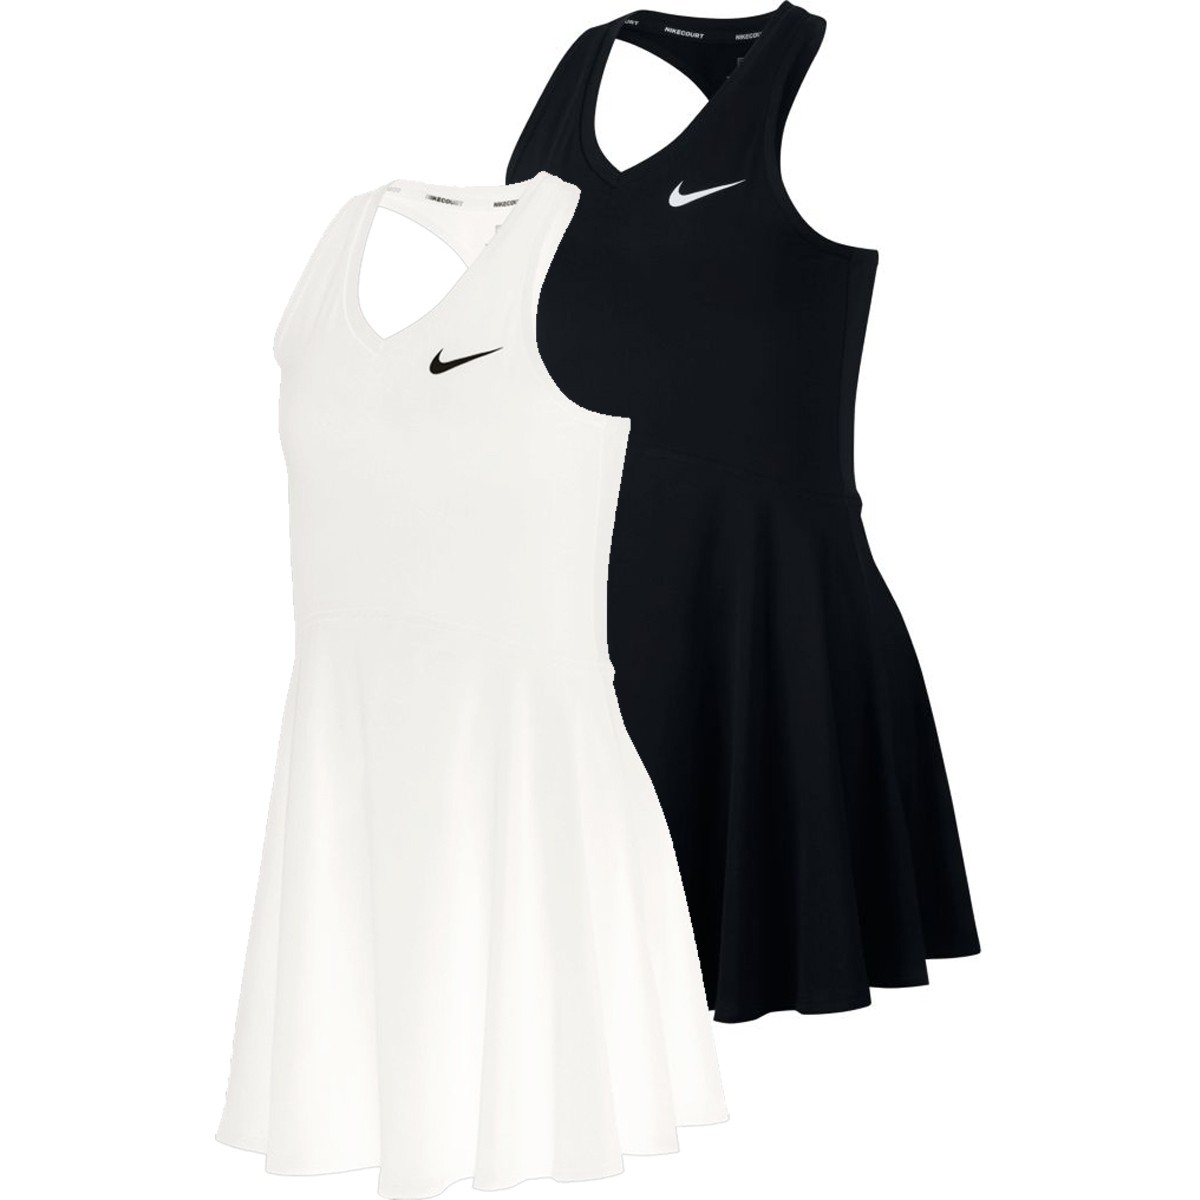 ROBE NIKE JUNIOR COURT PURE